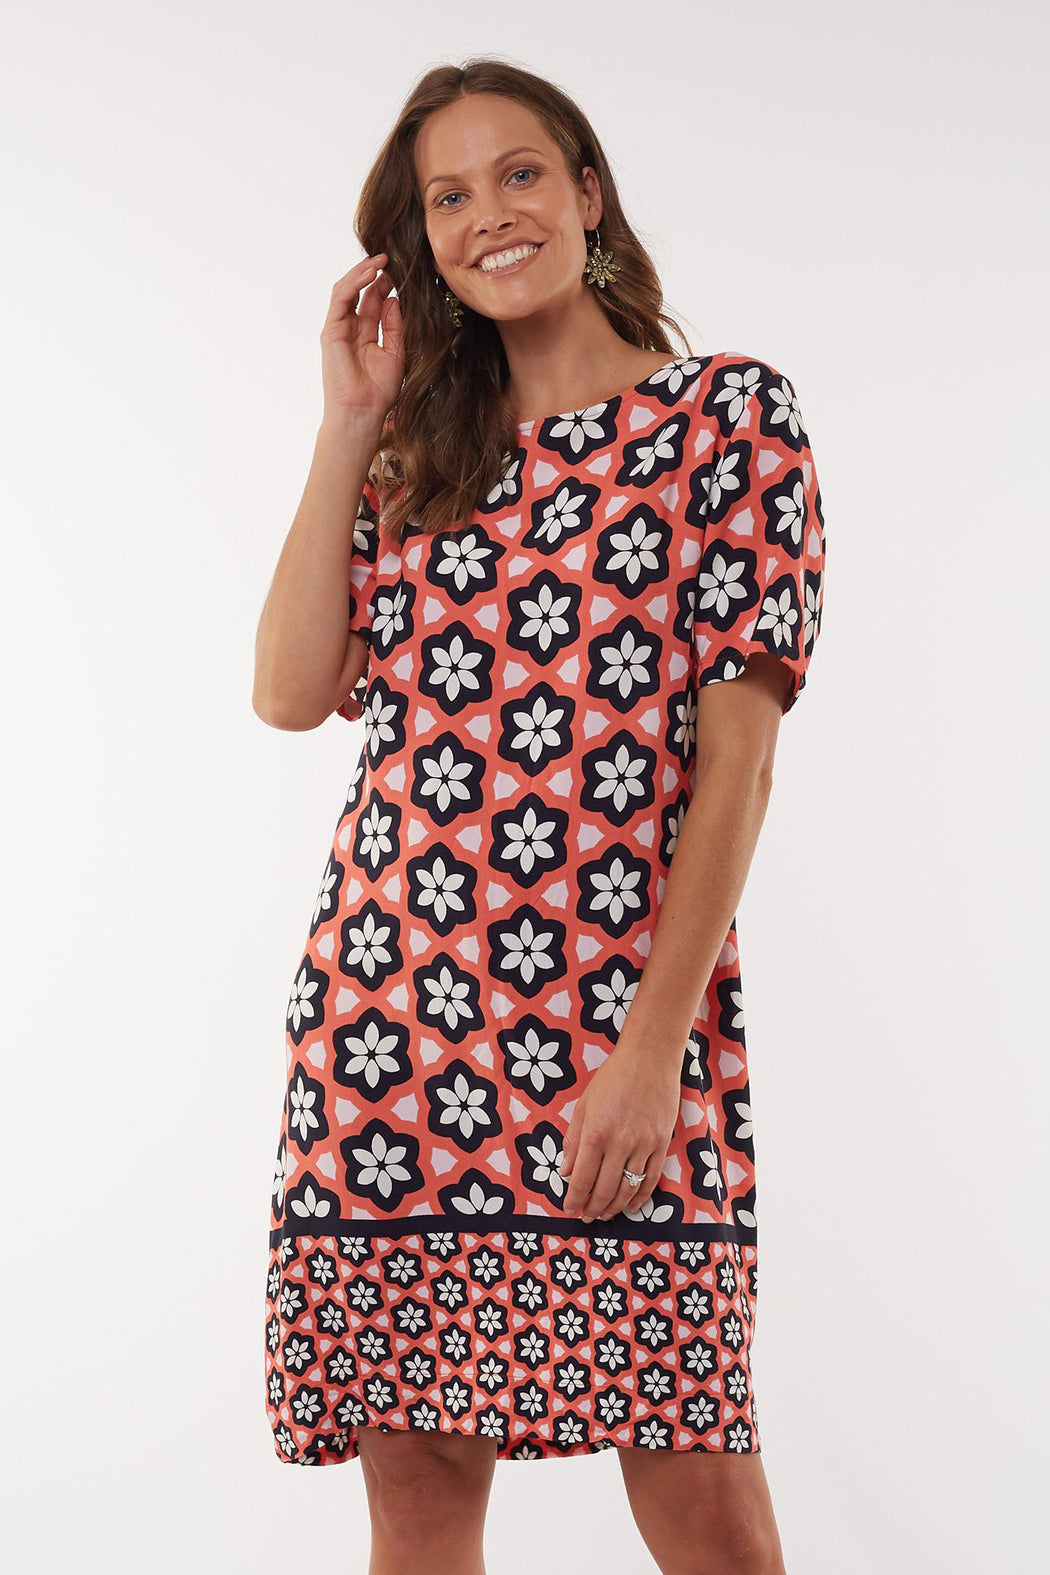 Elm Geo Floral Shift Dress - Melon | Shop Elm at Wallace & Gibbs NZ